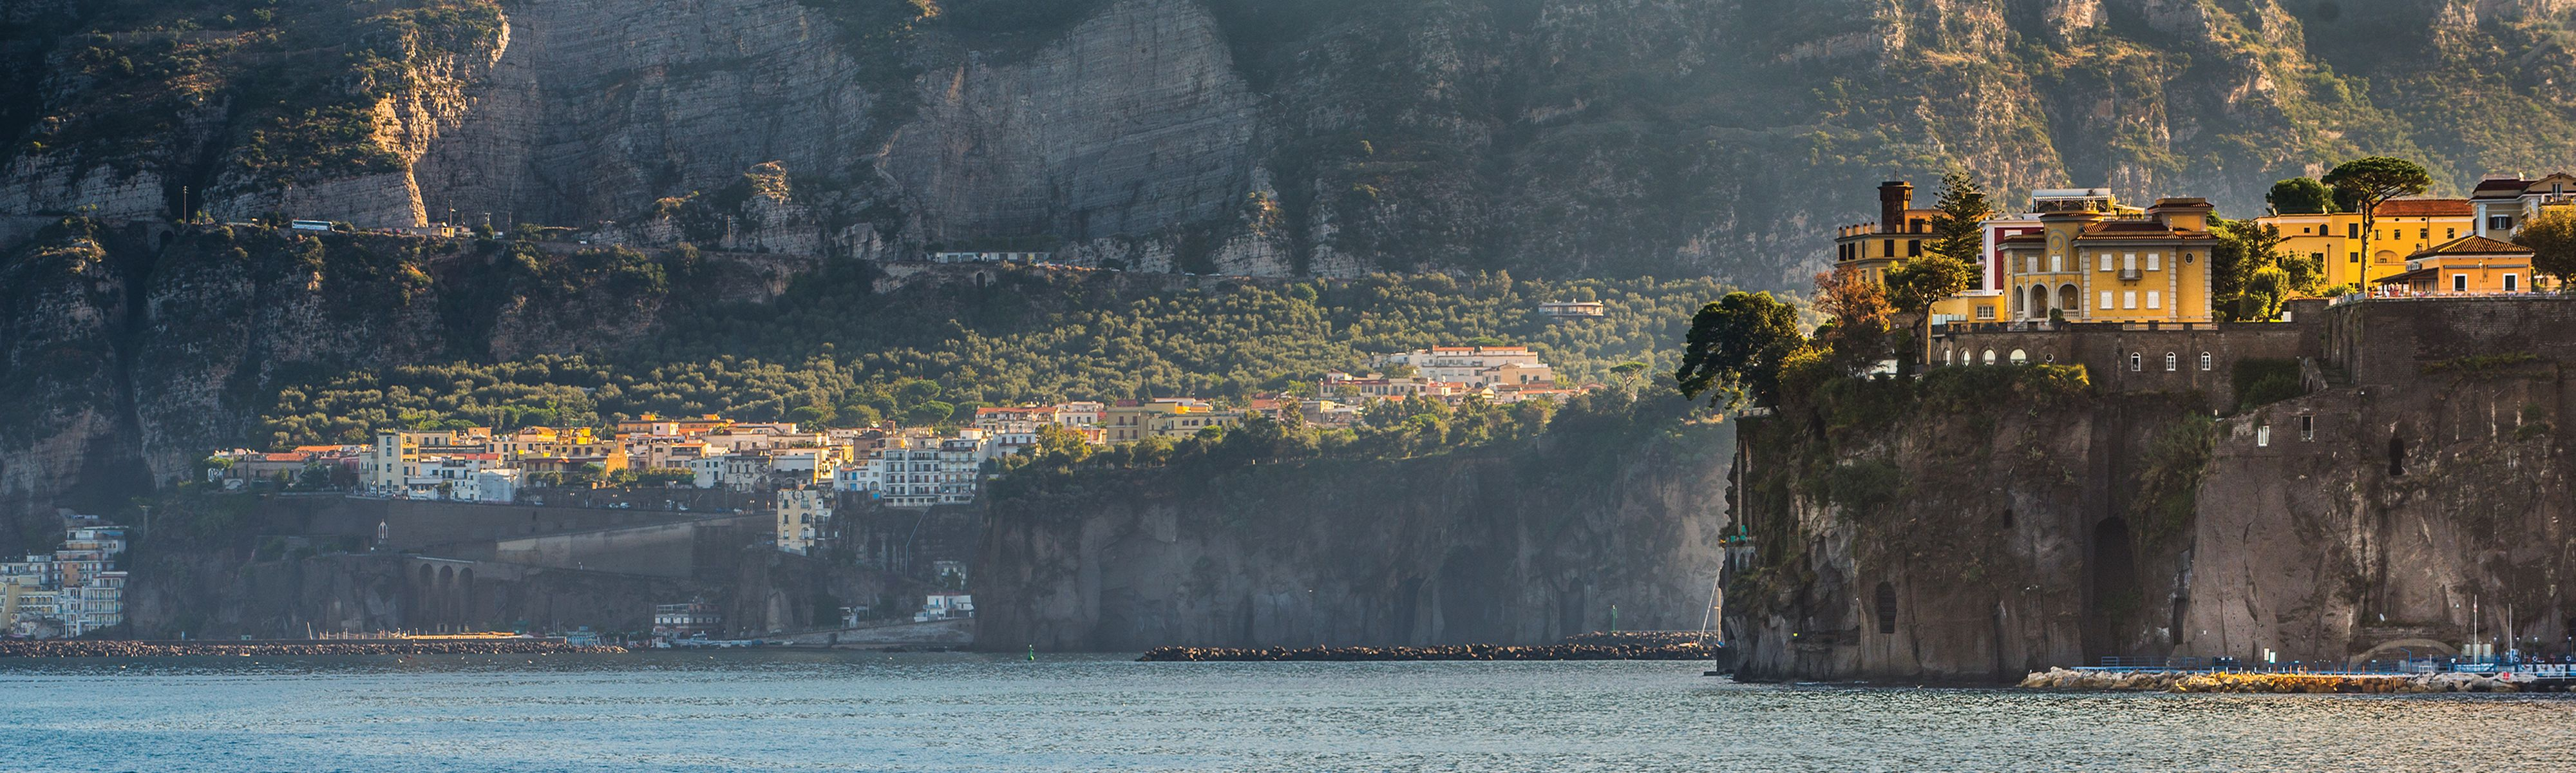 View of Sorrento coastline with yellow buildings in Italy